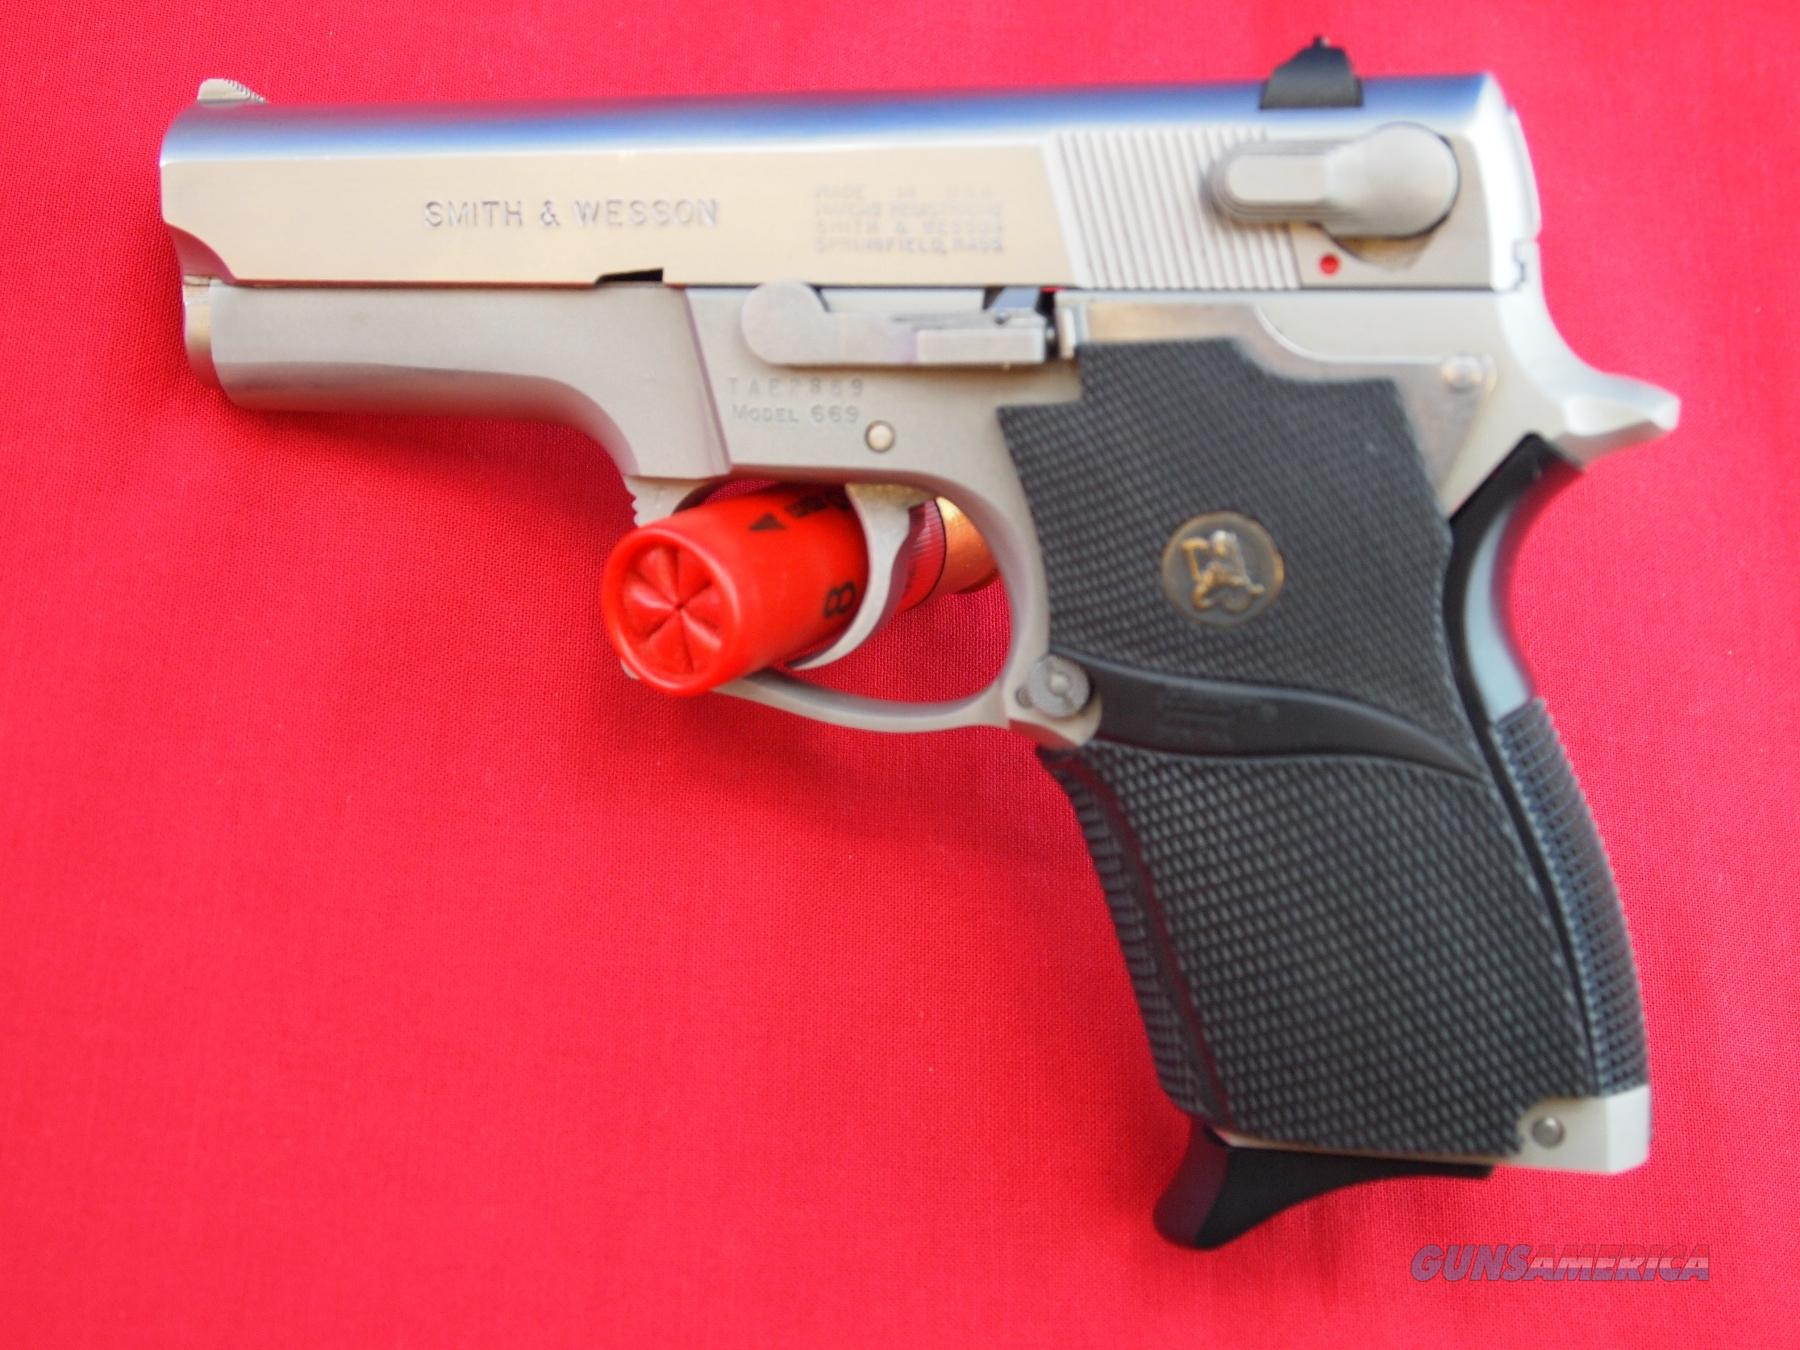 Smith & Wesson Model 669 9MM  Guns > Pistols > Smith & Wesson Pistols - Autos > Steel Frame